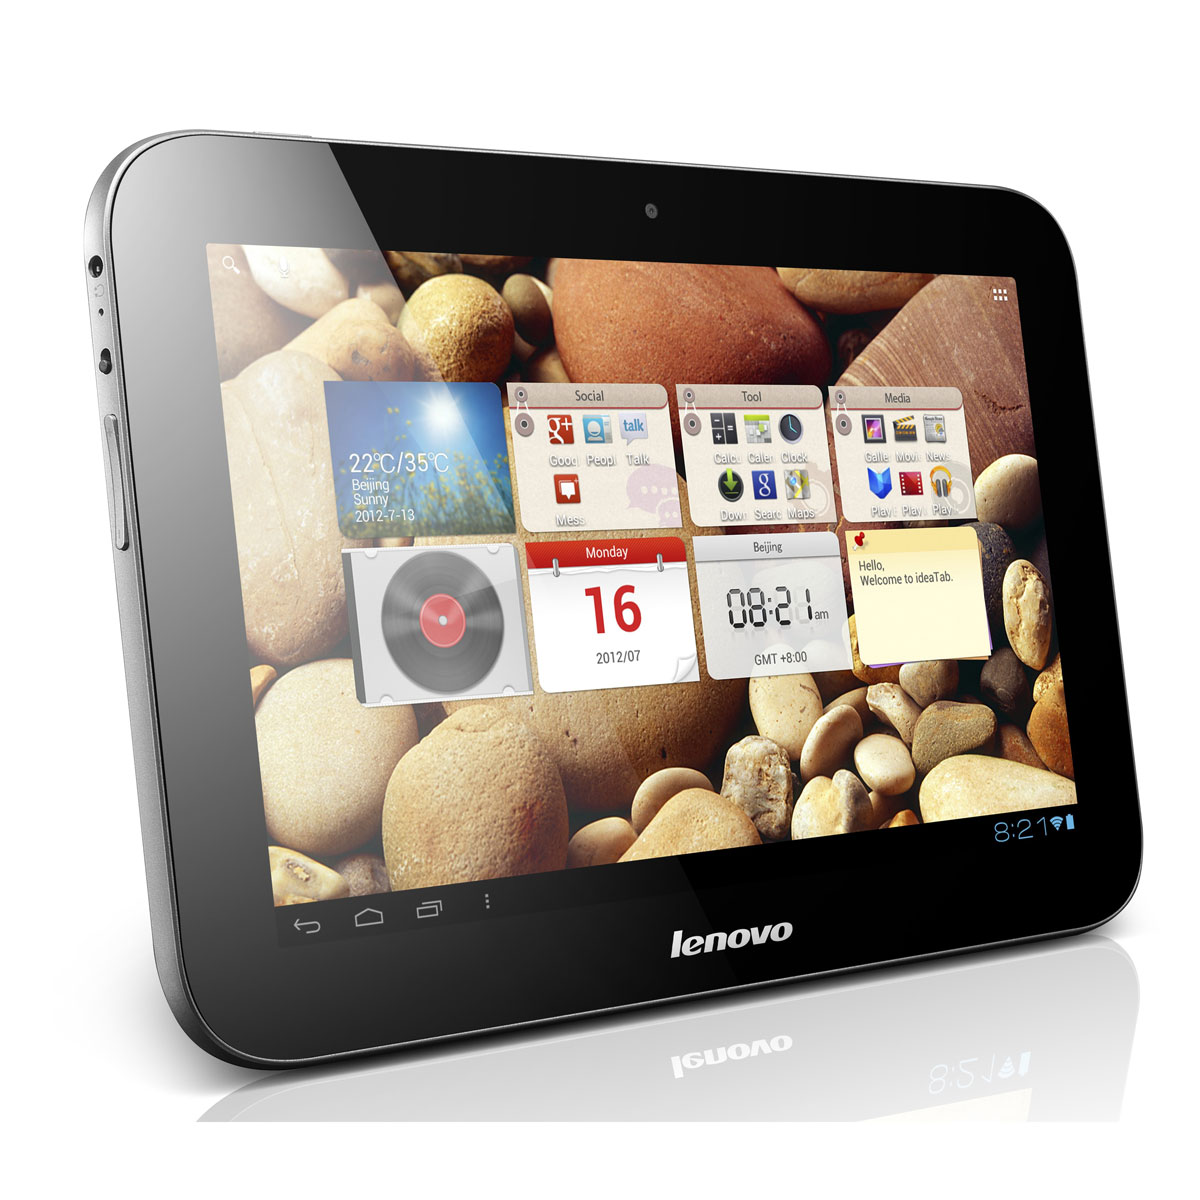 lenovo ideatab a2109 16 go tablette tactile lenovo sur. Black Bedroom Furniture Sets. Home Design Ideas